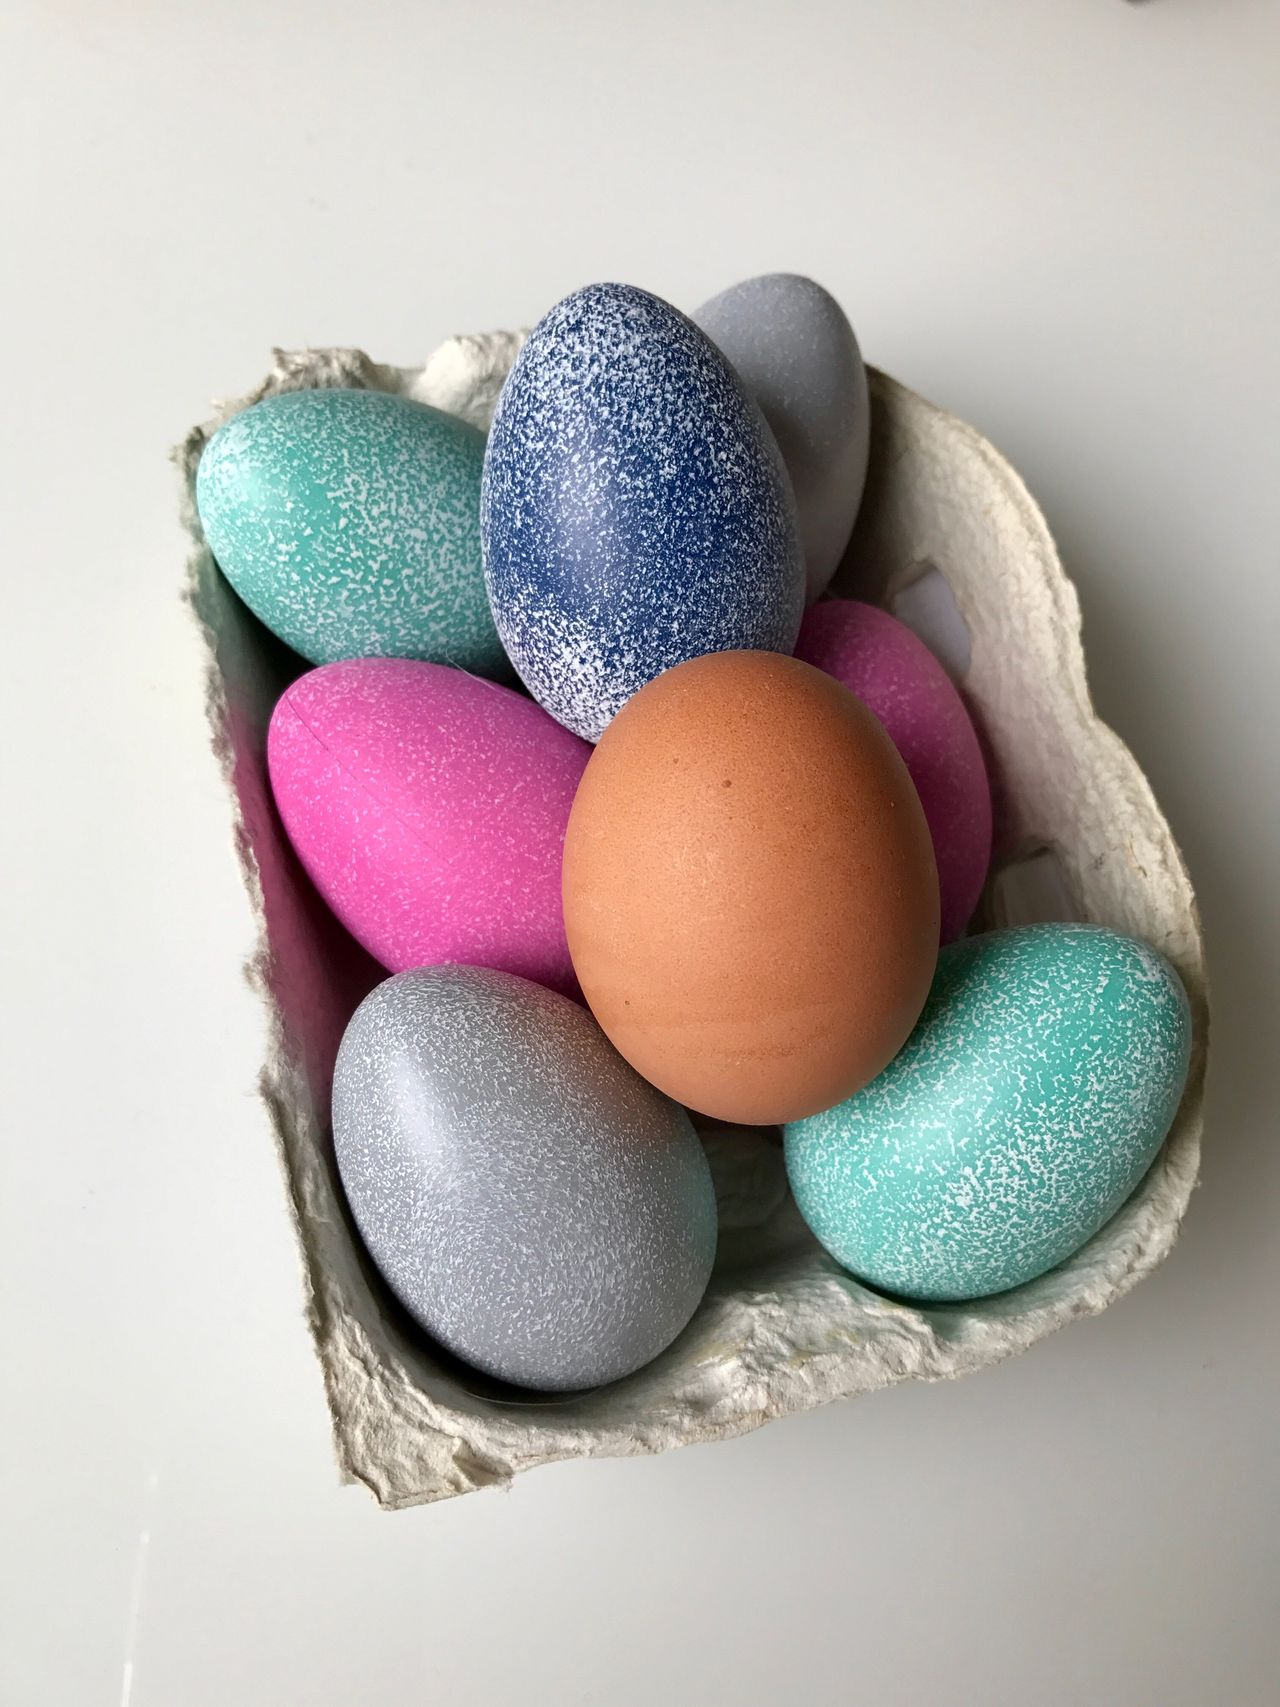 Easter Easter Egg Multi Colored Studio Shot Tradition Food Close-up No People Celebration Food And Drink Egg Carton Indoors  White Background Holiday - Event Freshness